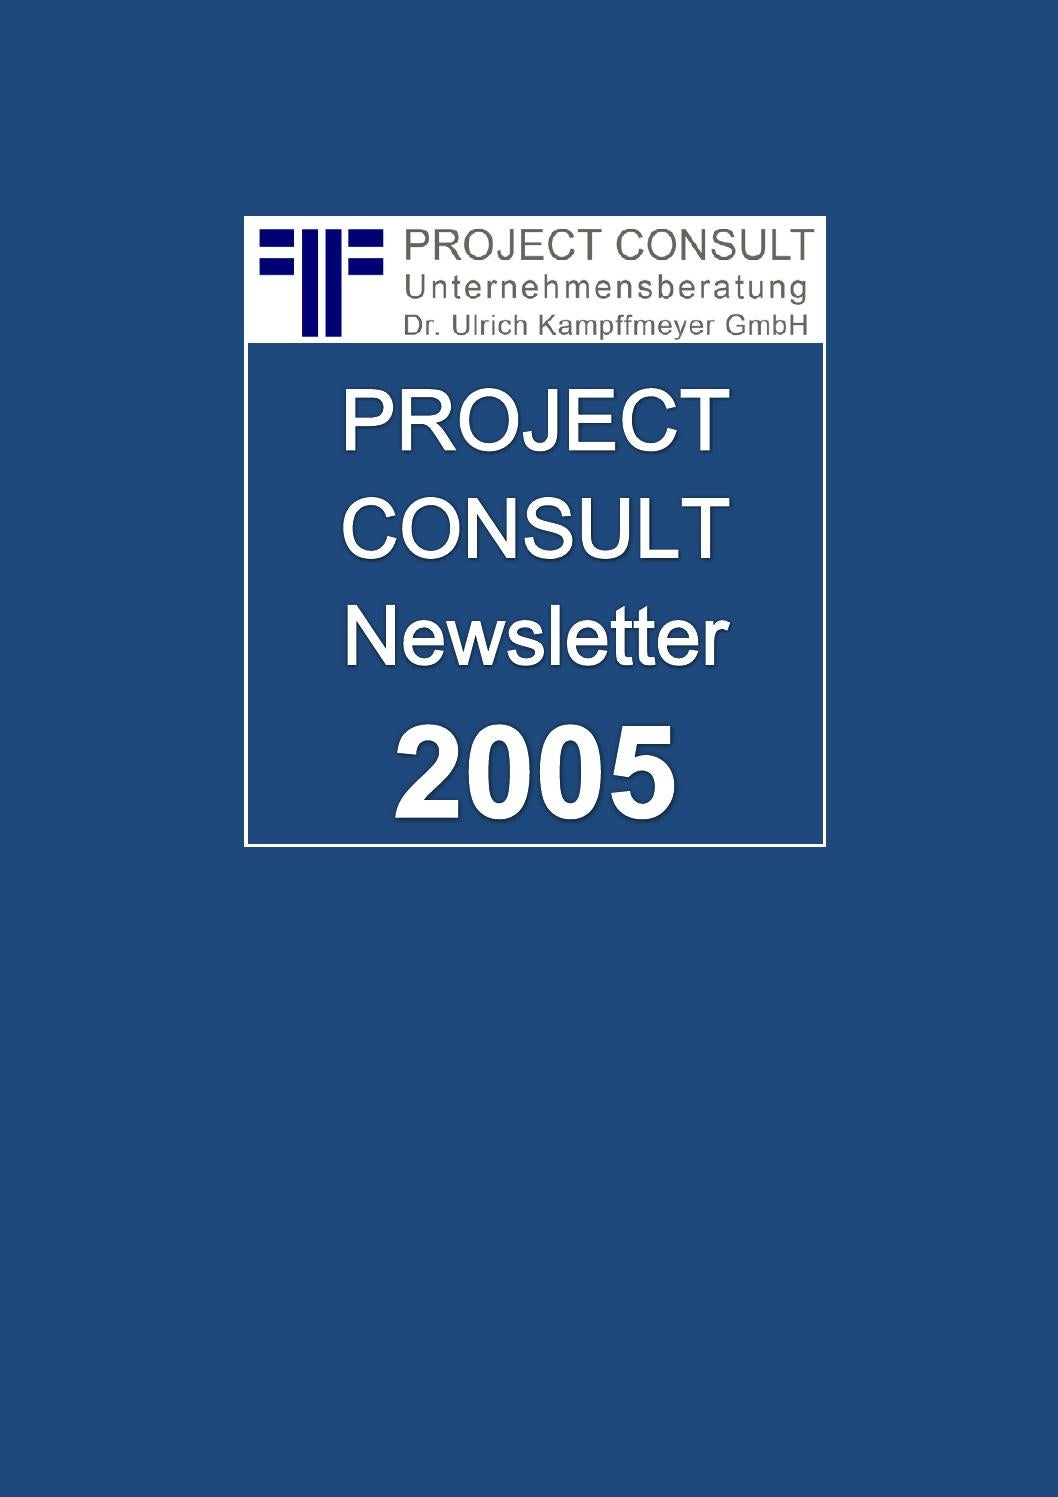 DE] PROJECT CONSULT Newsletter 2005 | PROJECT CONSULT ...